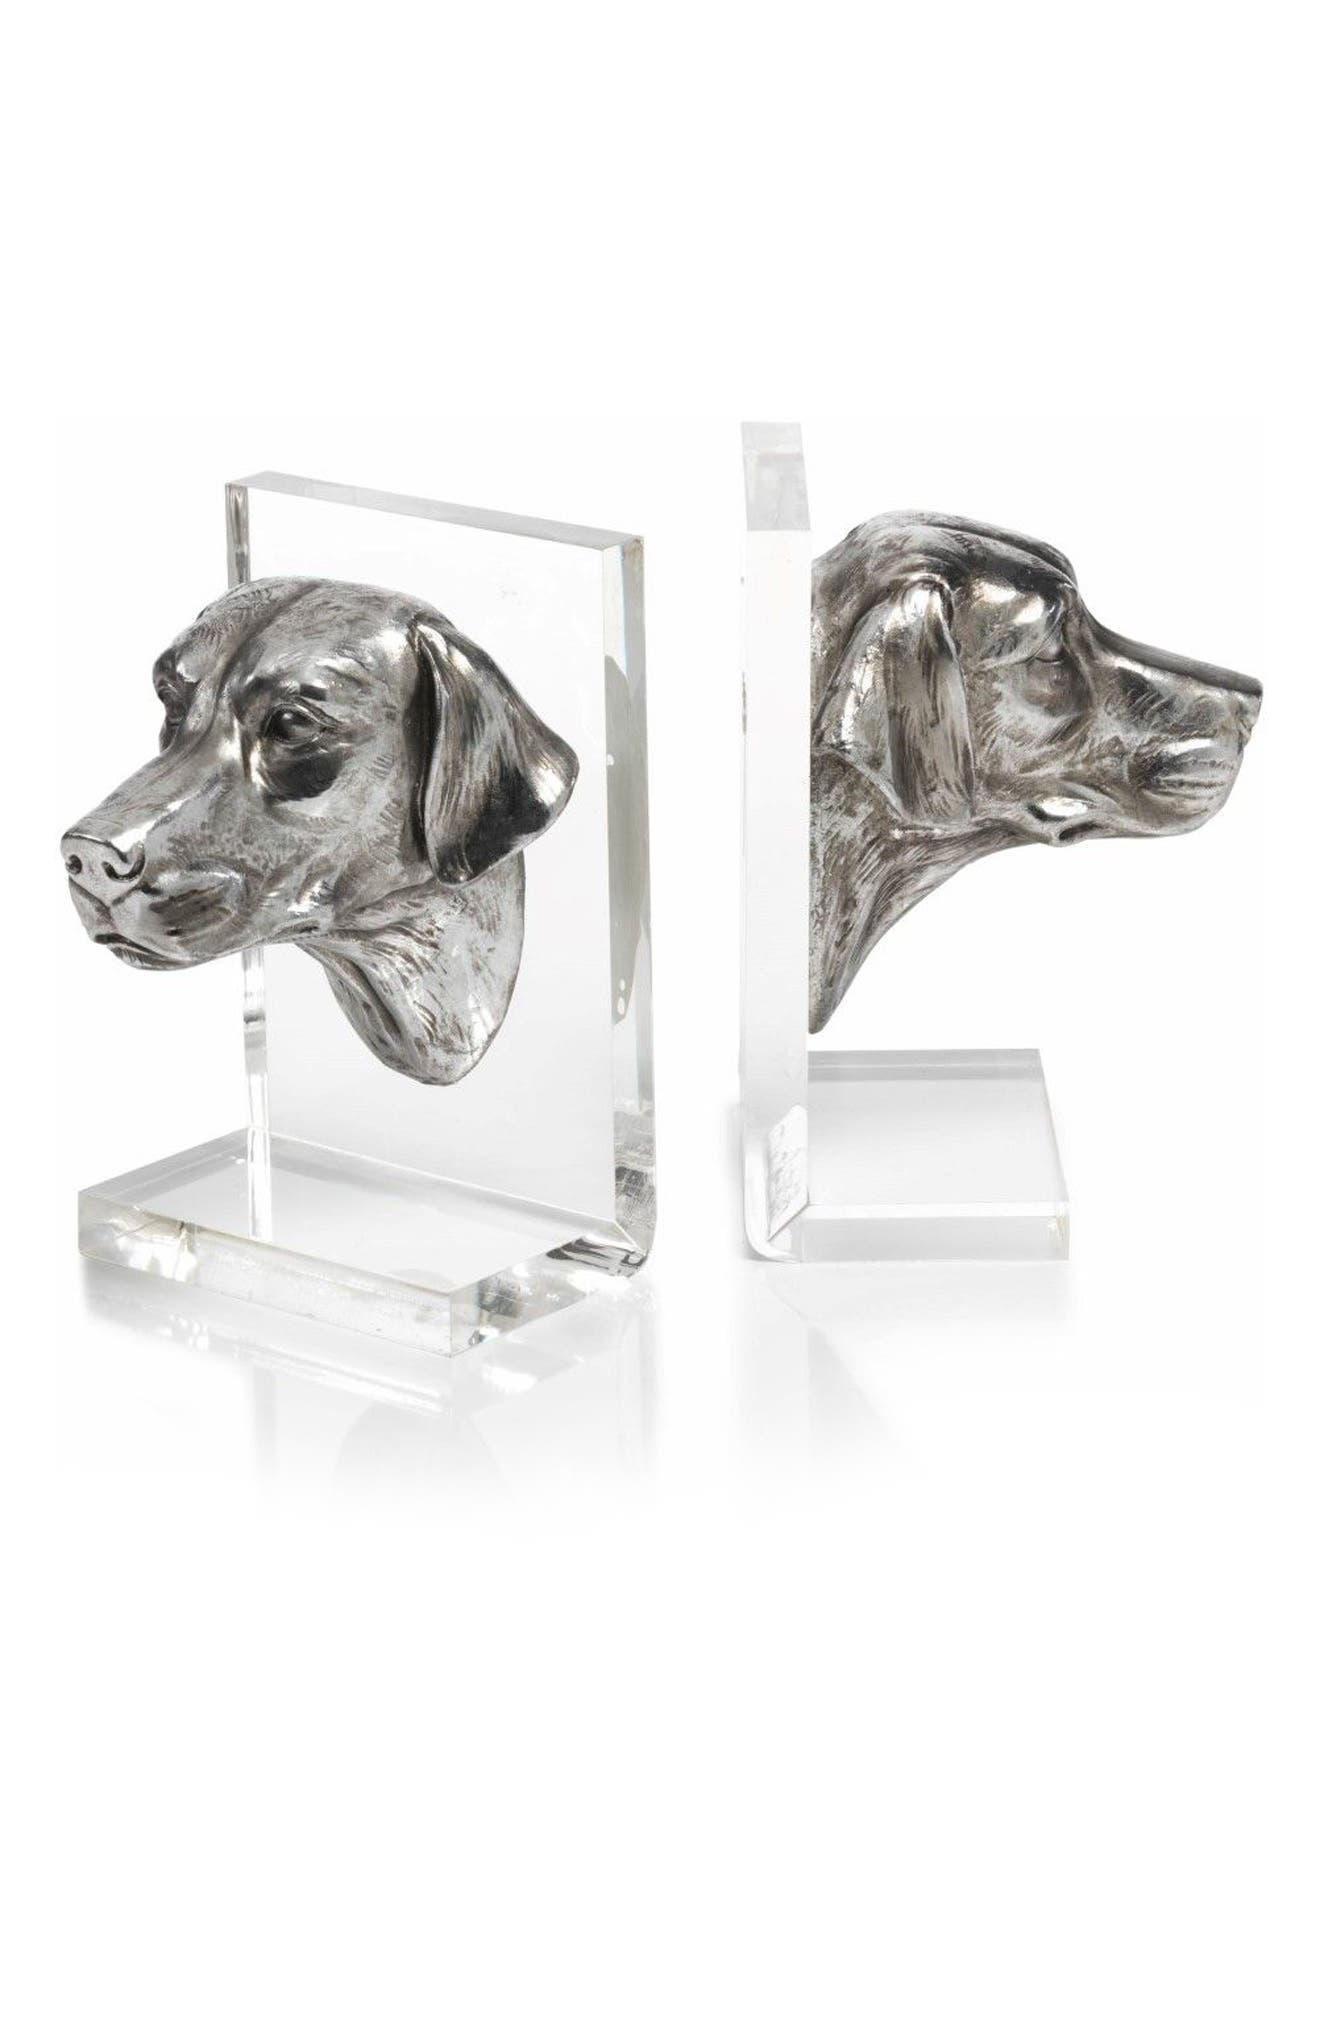 Cadence Set of 2 Dog Bookends,                             Main thumbnail 1, color,                             SILVER